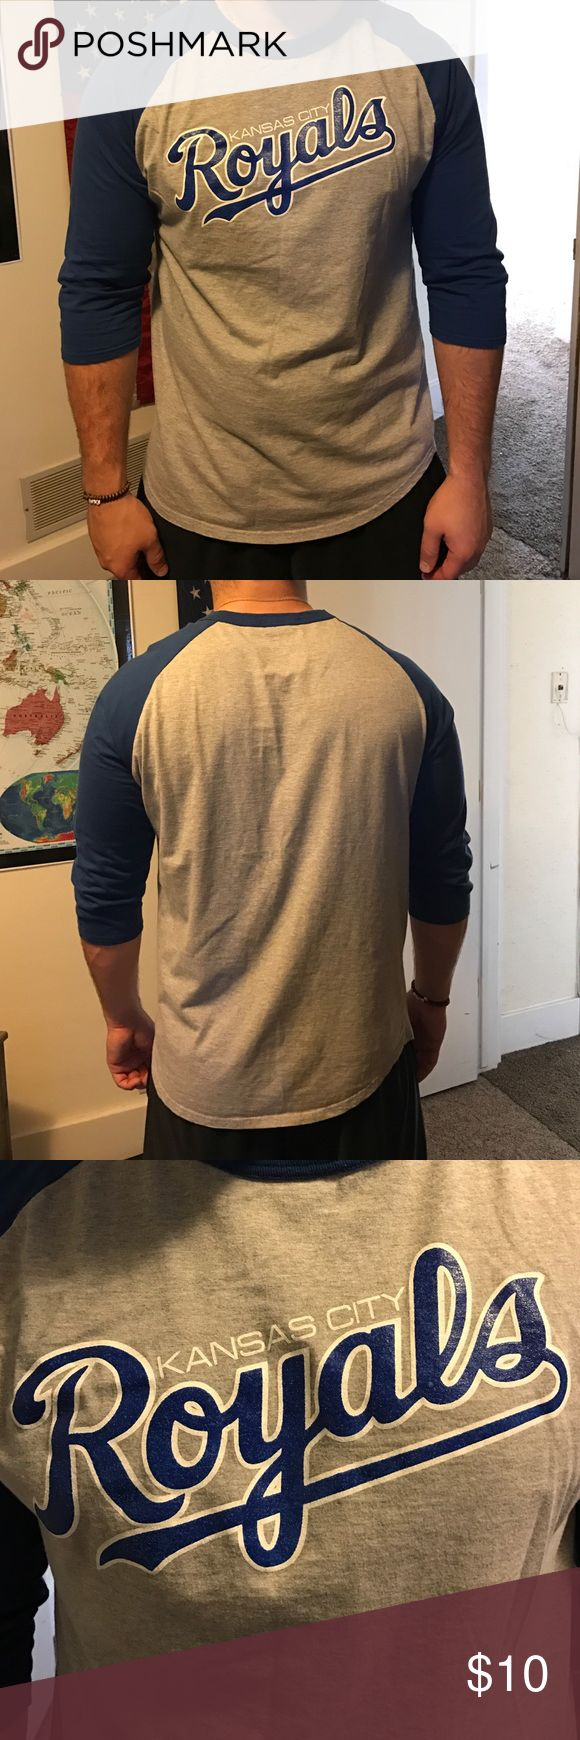 Kansas City Royals Baseball Tee for Men This Kansas City Royals baseball tee is perfect for any Royals fan! Size large and lightly worn and in good condition. Great deal! Sport Tek Shirts